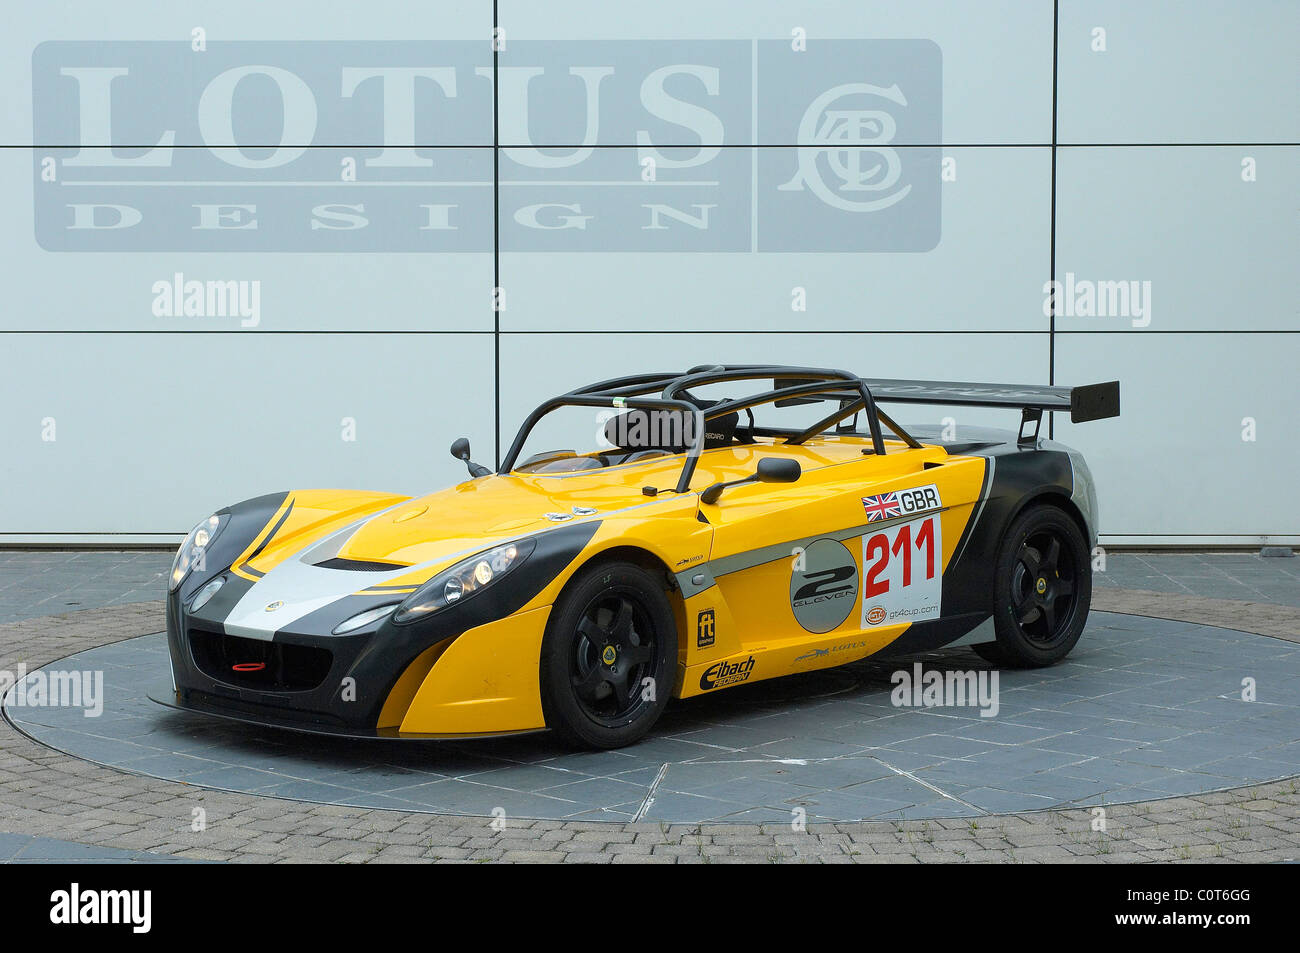 http://c8.alamy.com/comp/C0T6GG/racebred-2-eleven-unleashed-in-2007-lotus-released-the-2-eleven-track-C0T6GG.jpg